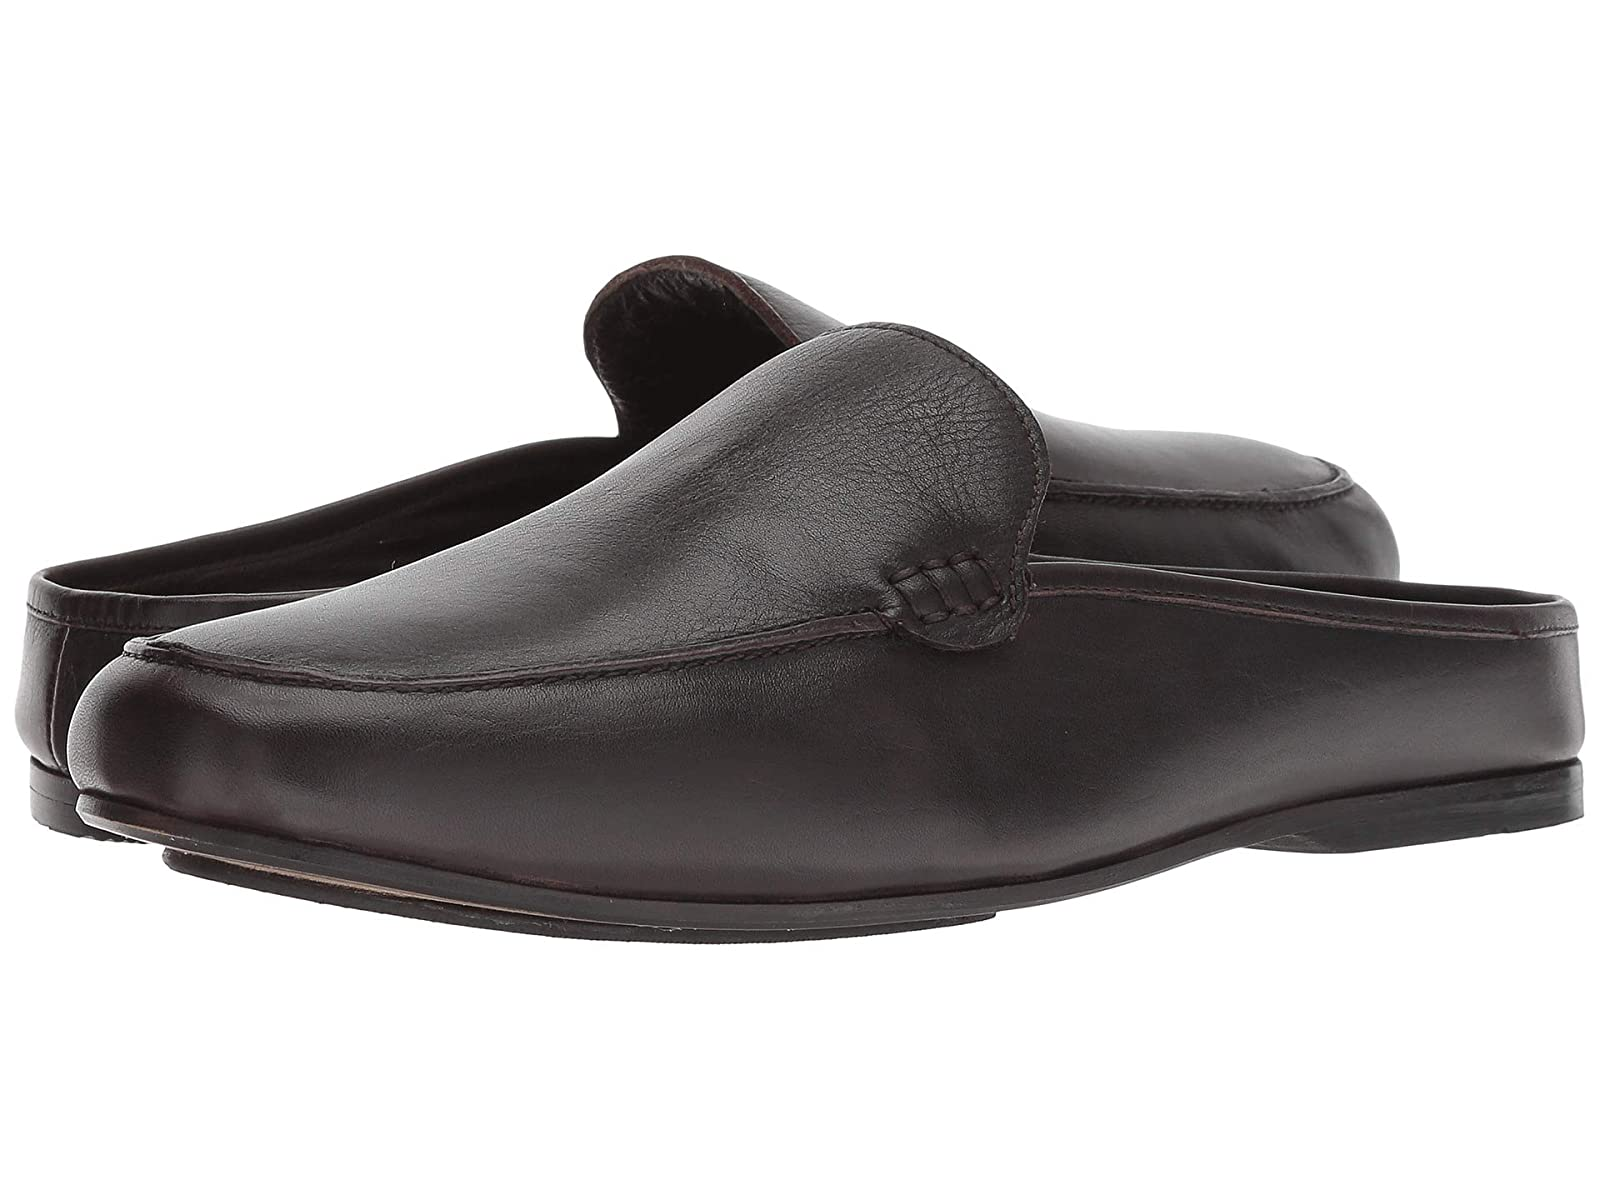 CARLOS by Carlos Santana Planeo SlideAtmospheric grades have affordable shoes